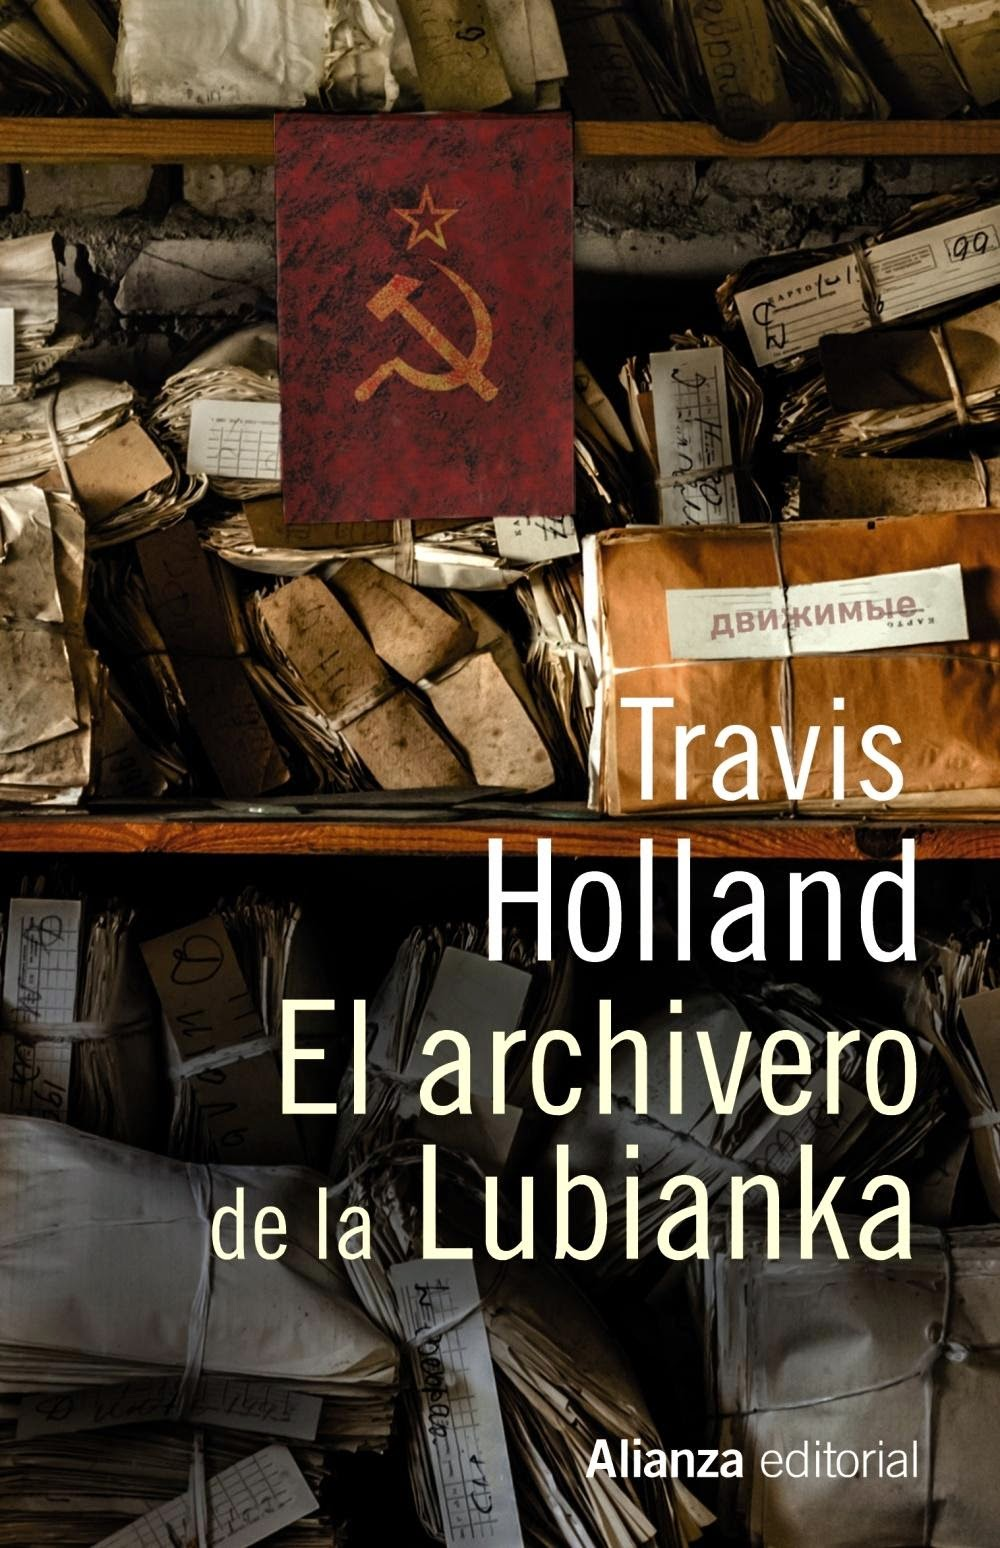 El archivero de la Lubianka - Travis Holland (2014)